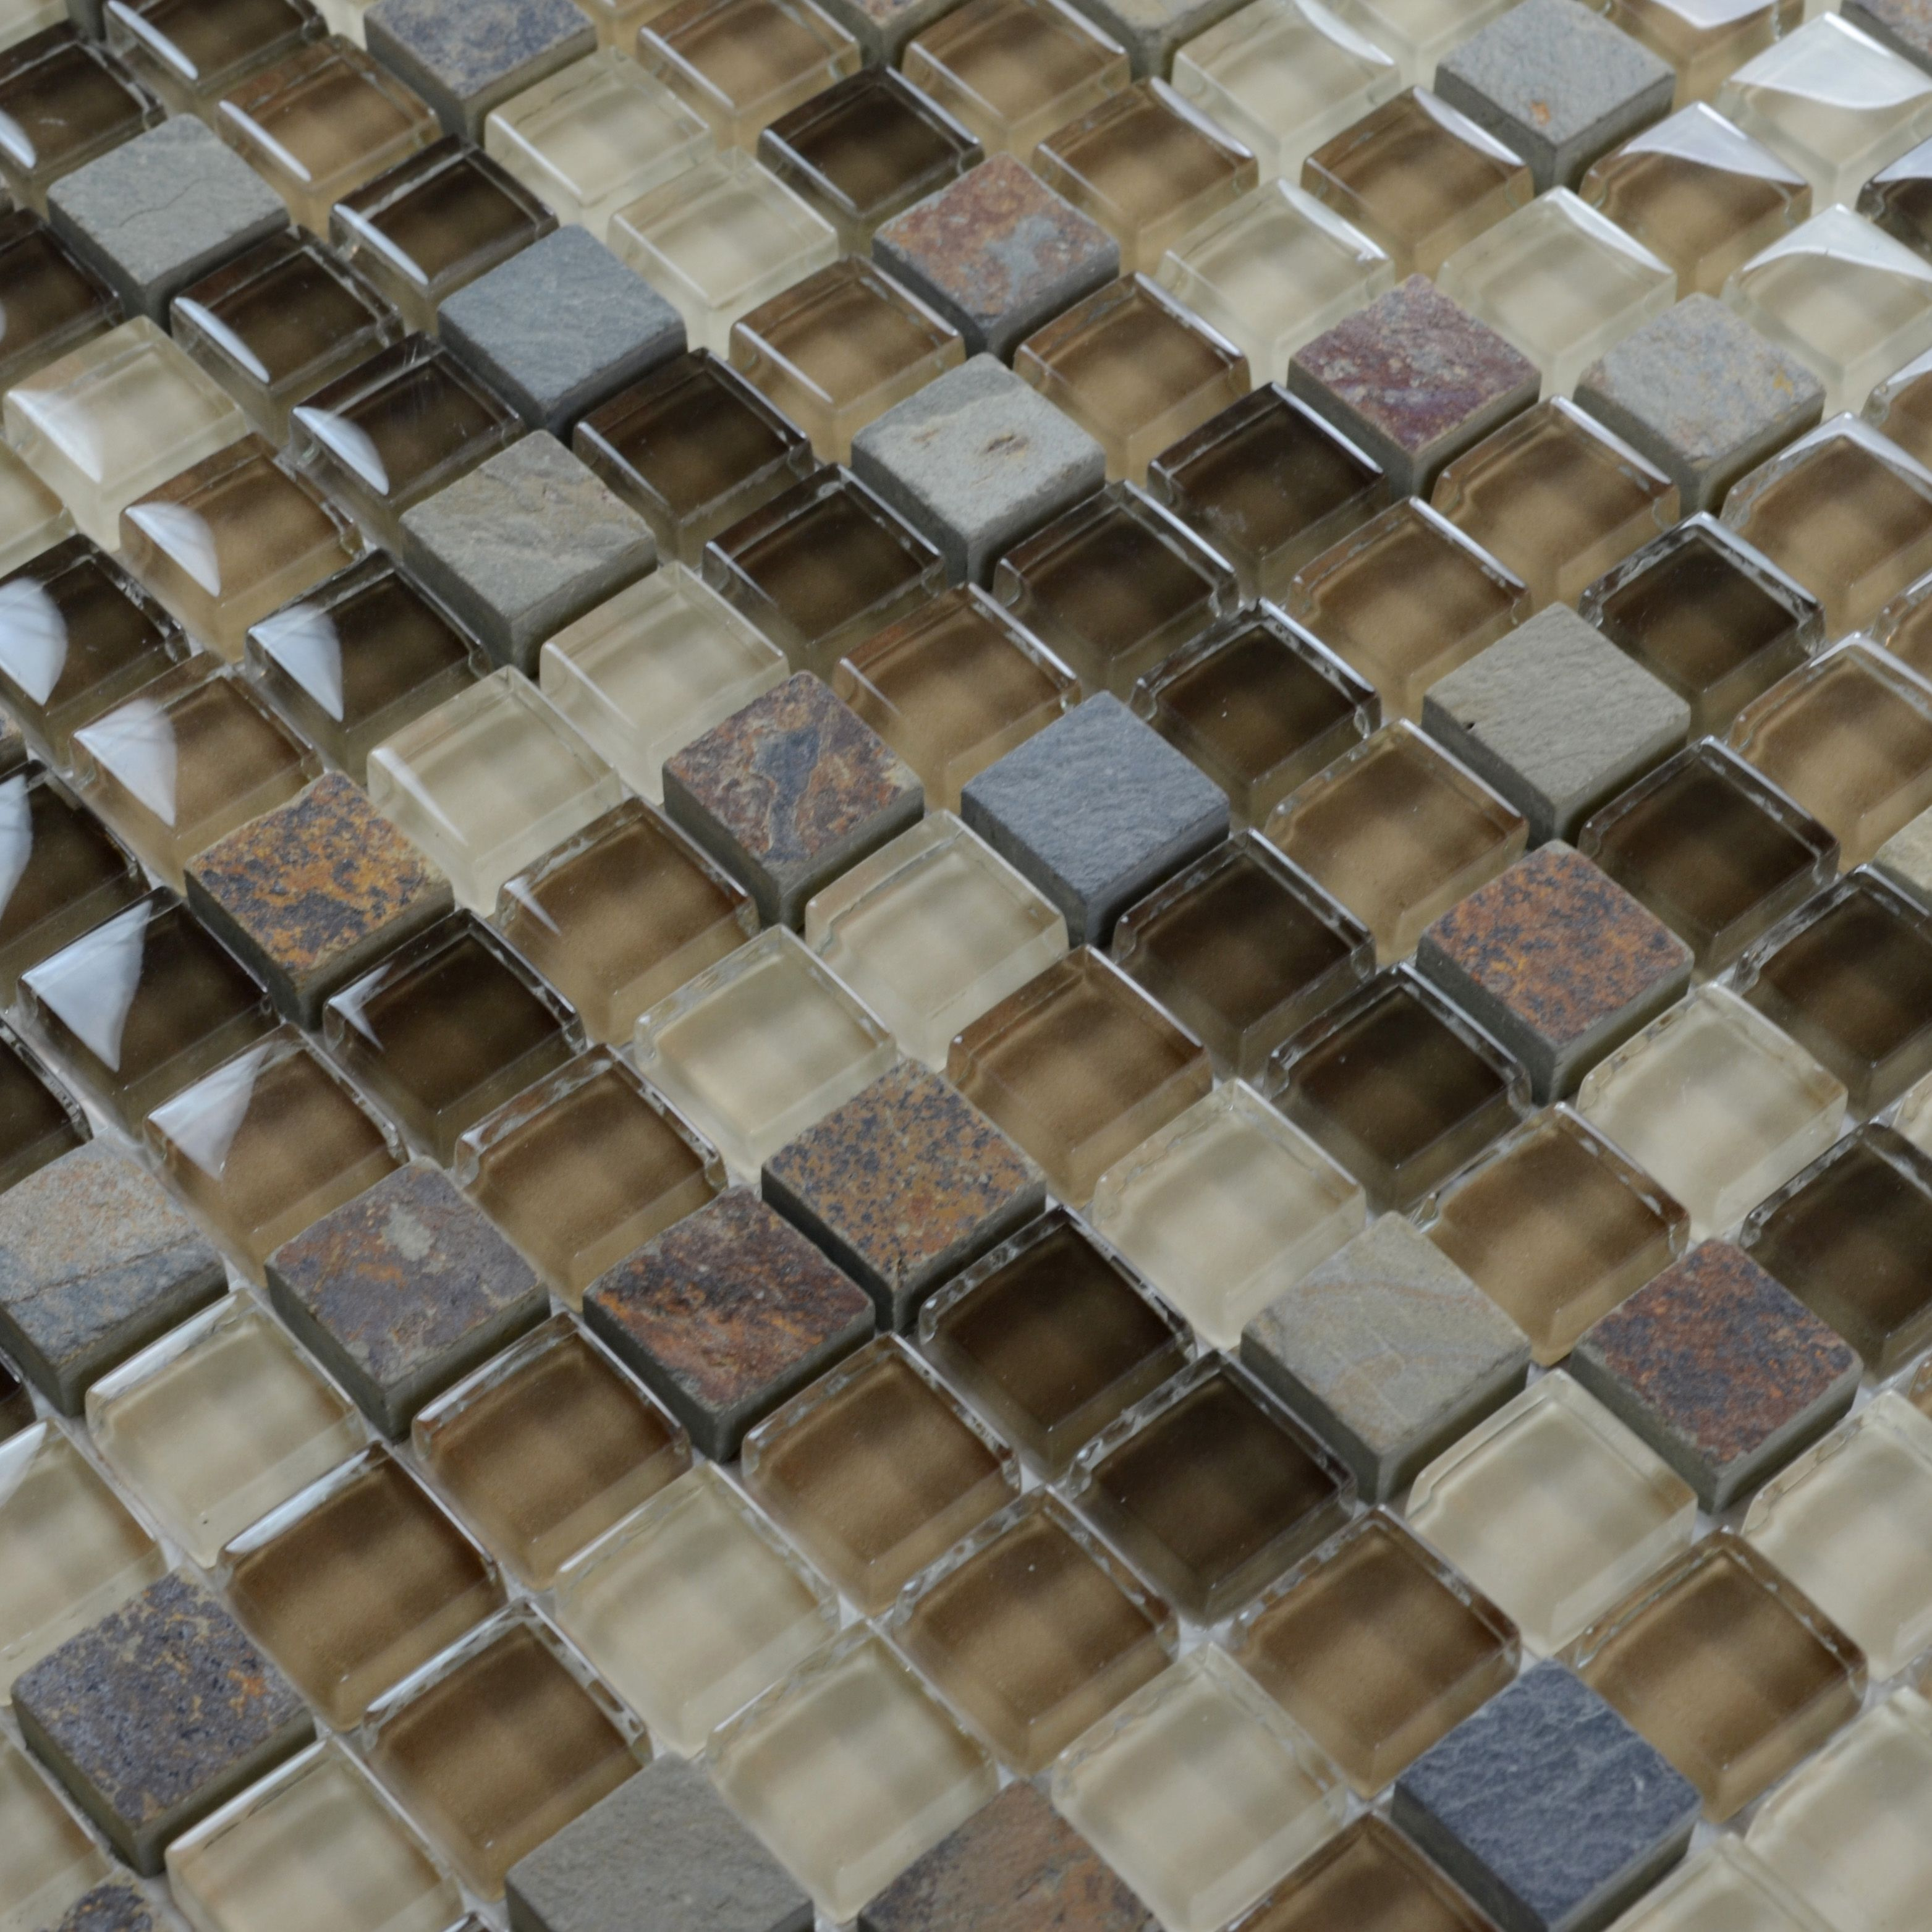 Stone glass mosaic tile ice crack glass with marble backsplash stone glass mosaic tile ice crack glass with marble backsplash wall stickers floor tiles sg130 dailygadgetfo Gallery